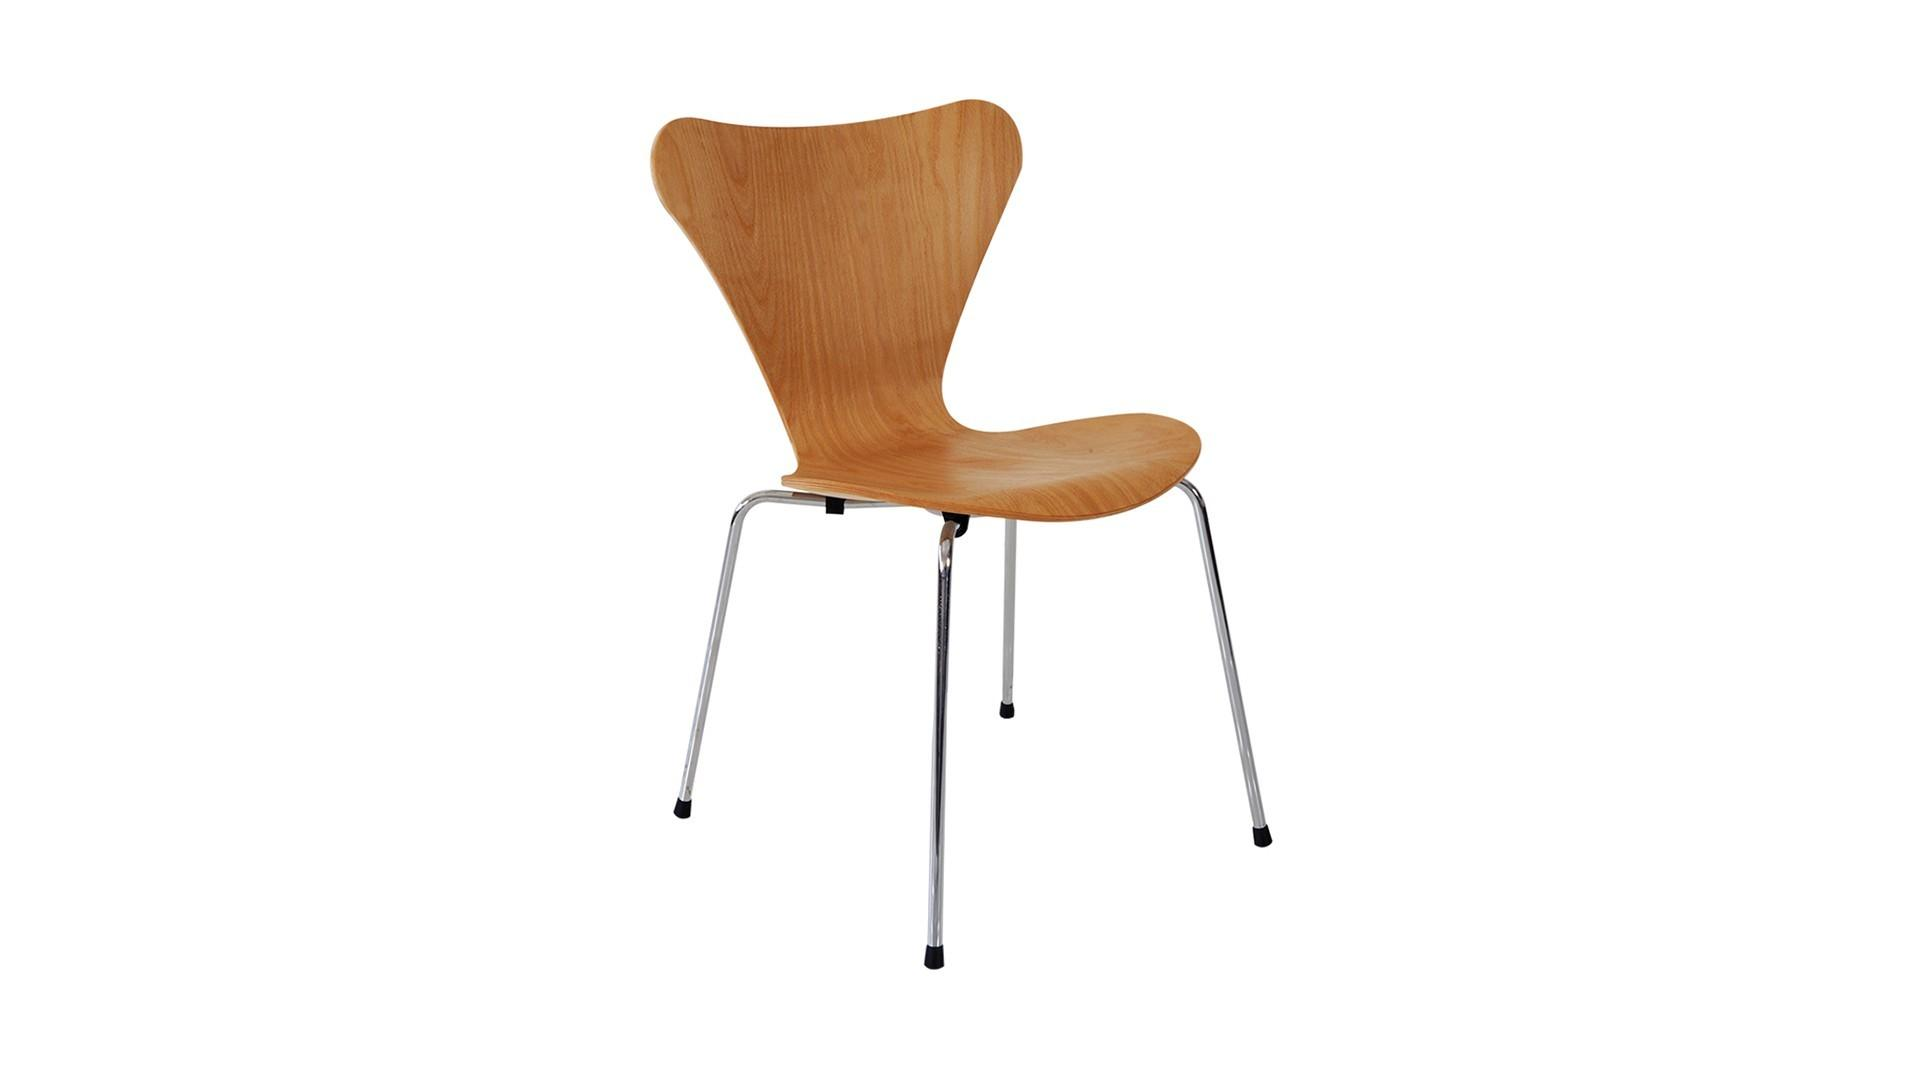 Chair Arne Jacobsen Series Ck45 Classic Design